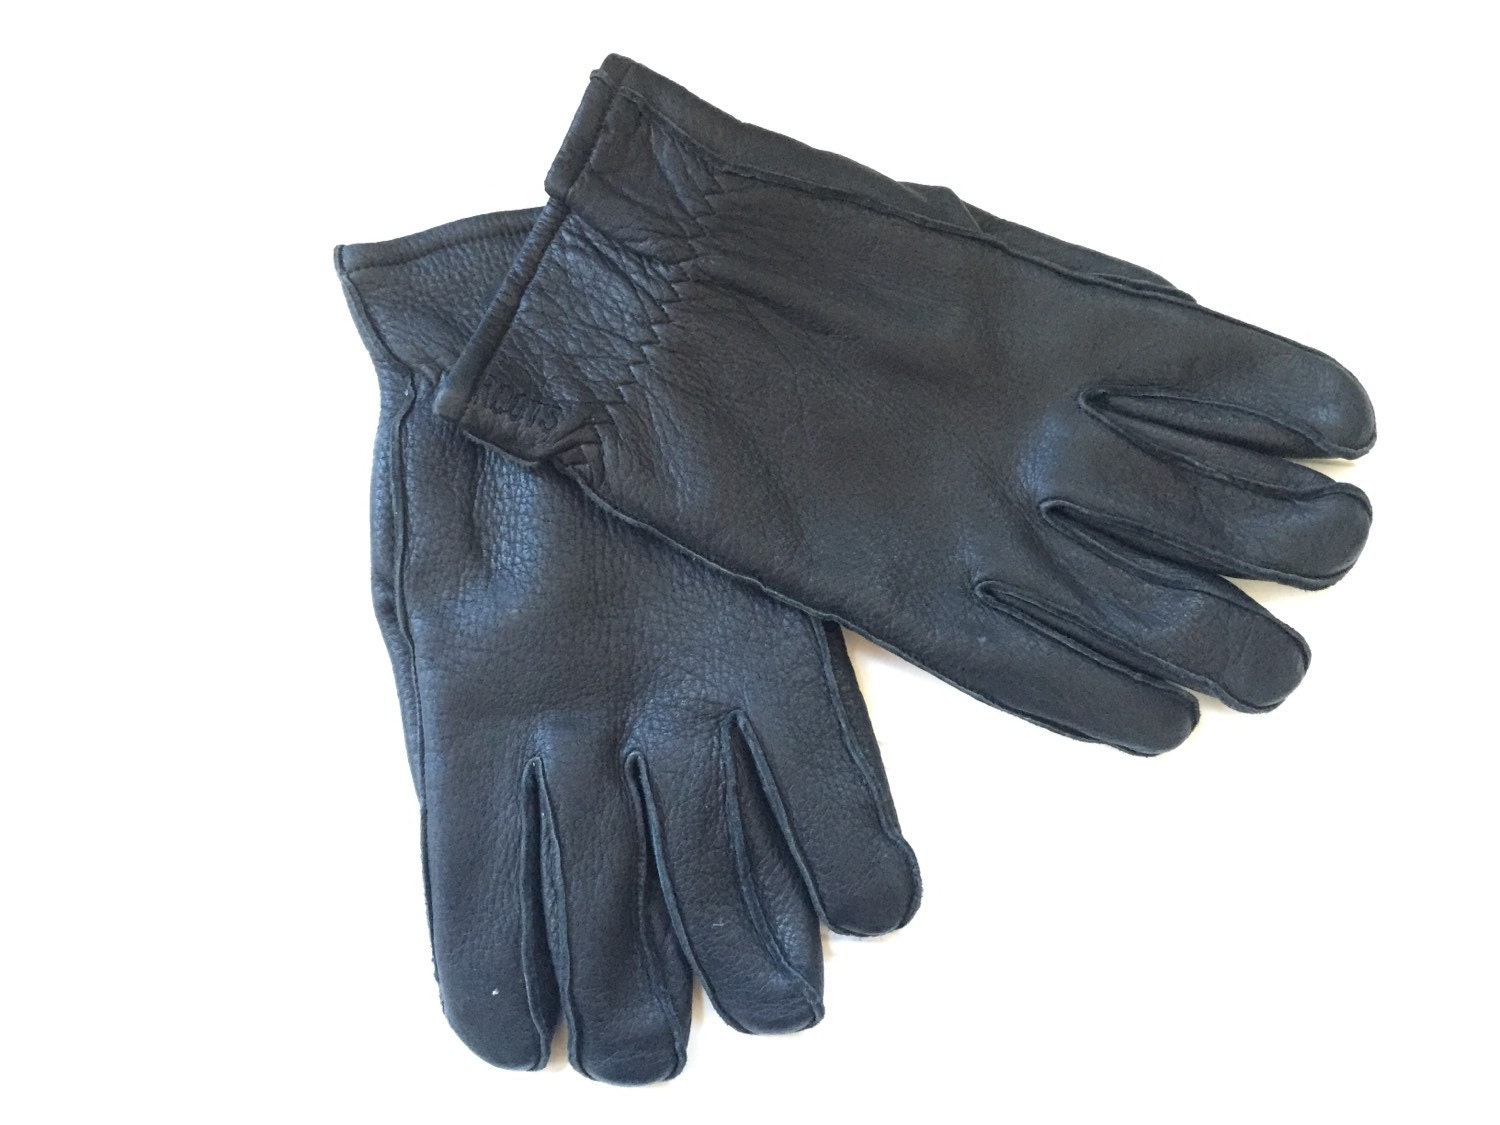 Driving gloves winter - Roots Leather Gloves Men Mens Winter Gloves Driving Gloves Fleece Lined